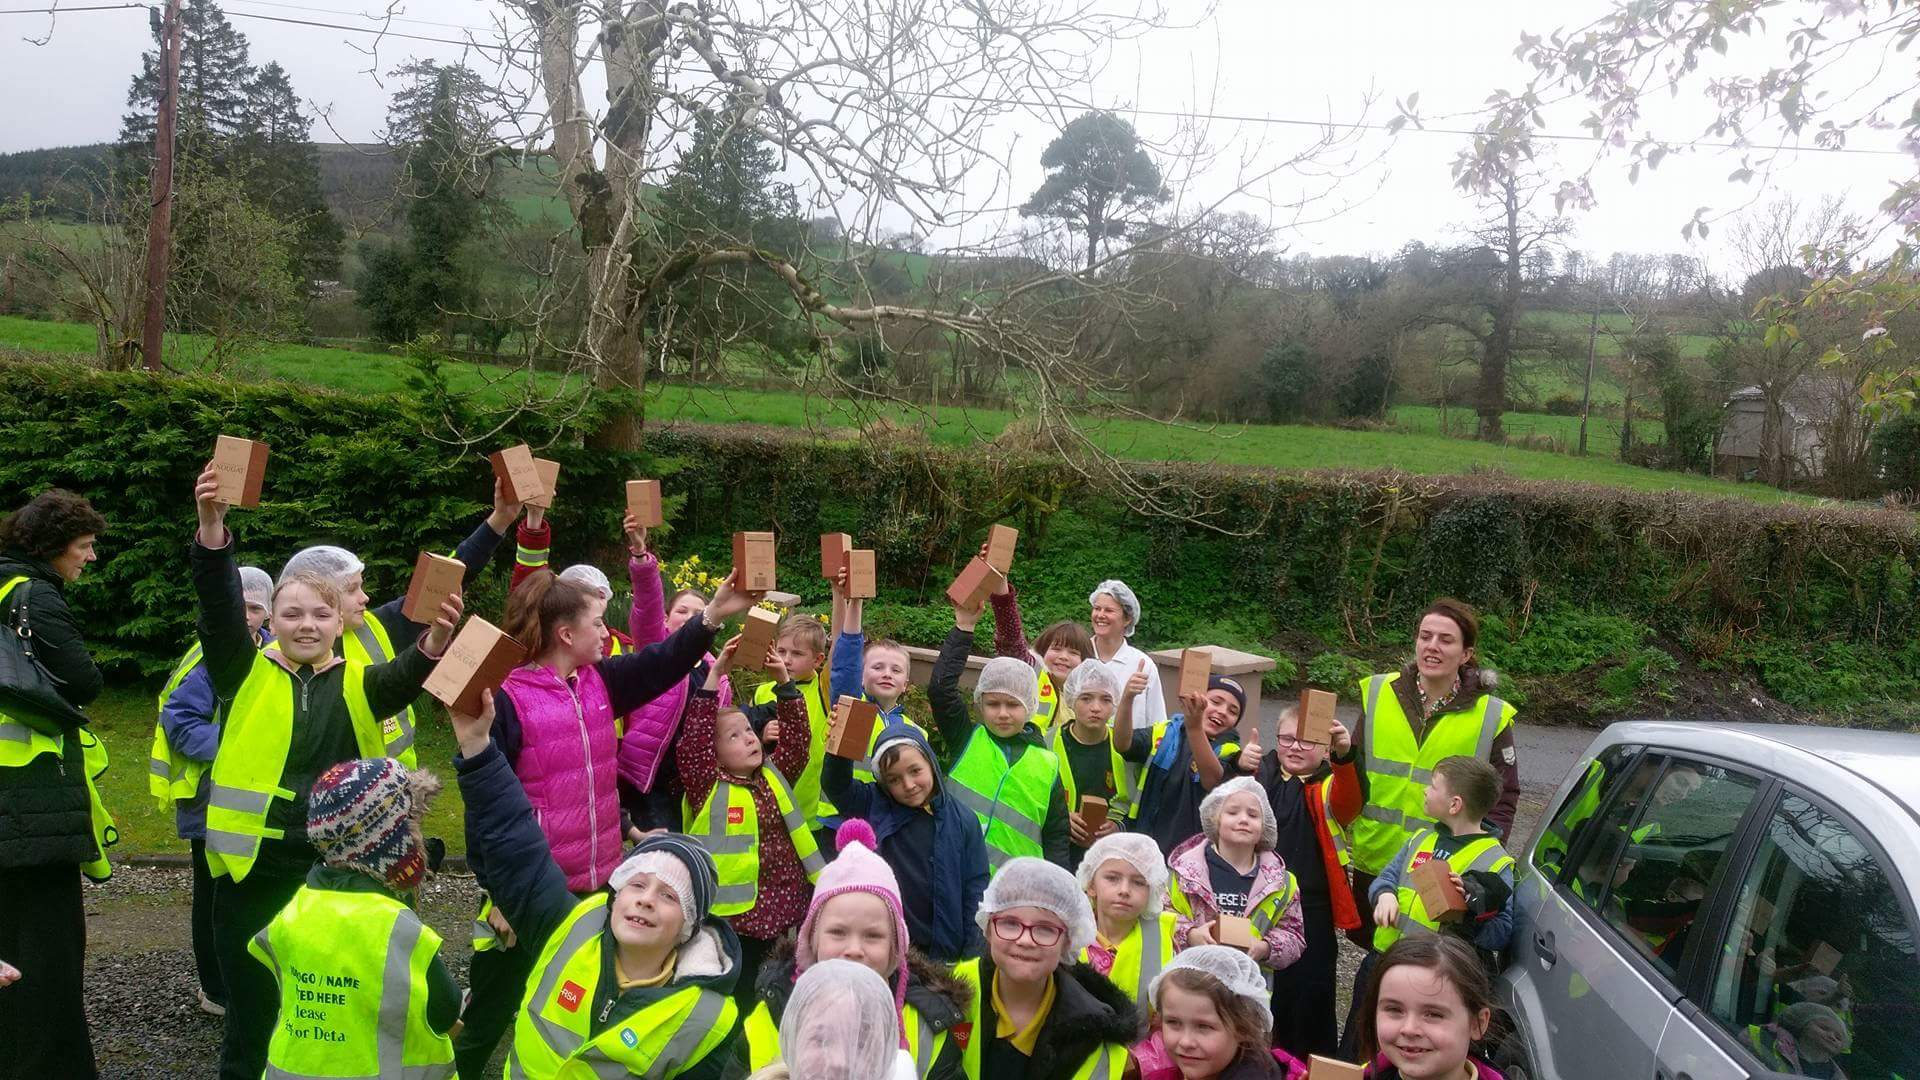 We had a very exciting visit from the children of Donoughmore NS.They all walked from the school and we gave them the ins and outs of our nougat kitchen. They even got to hand wrap nougat sweets and took them home. Some even kept their hair nets on for the day.